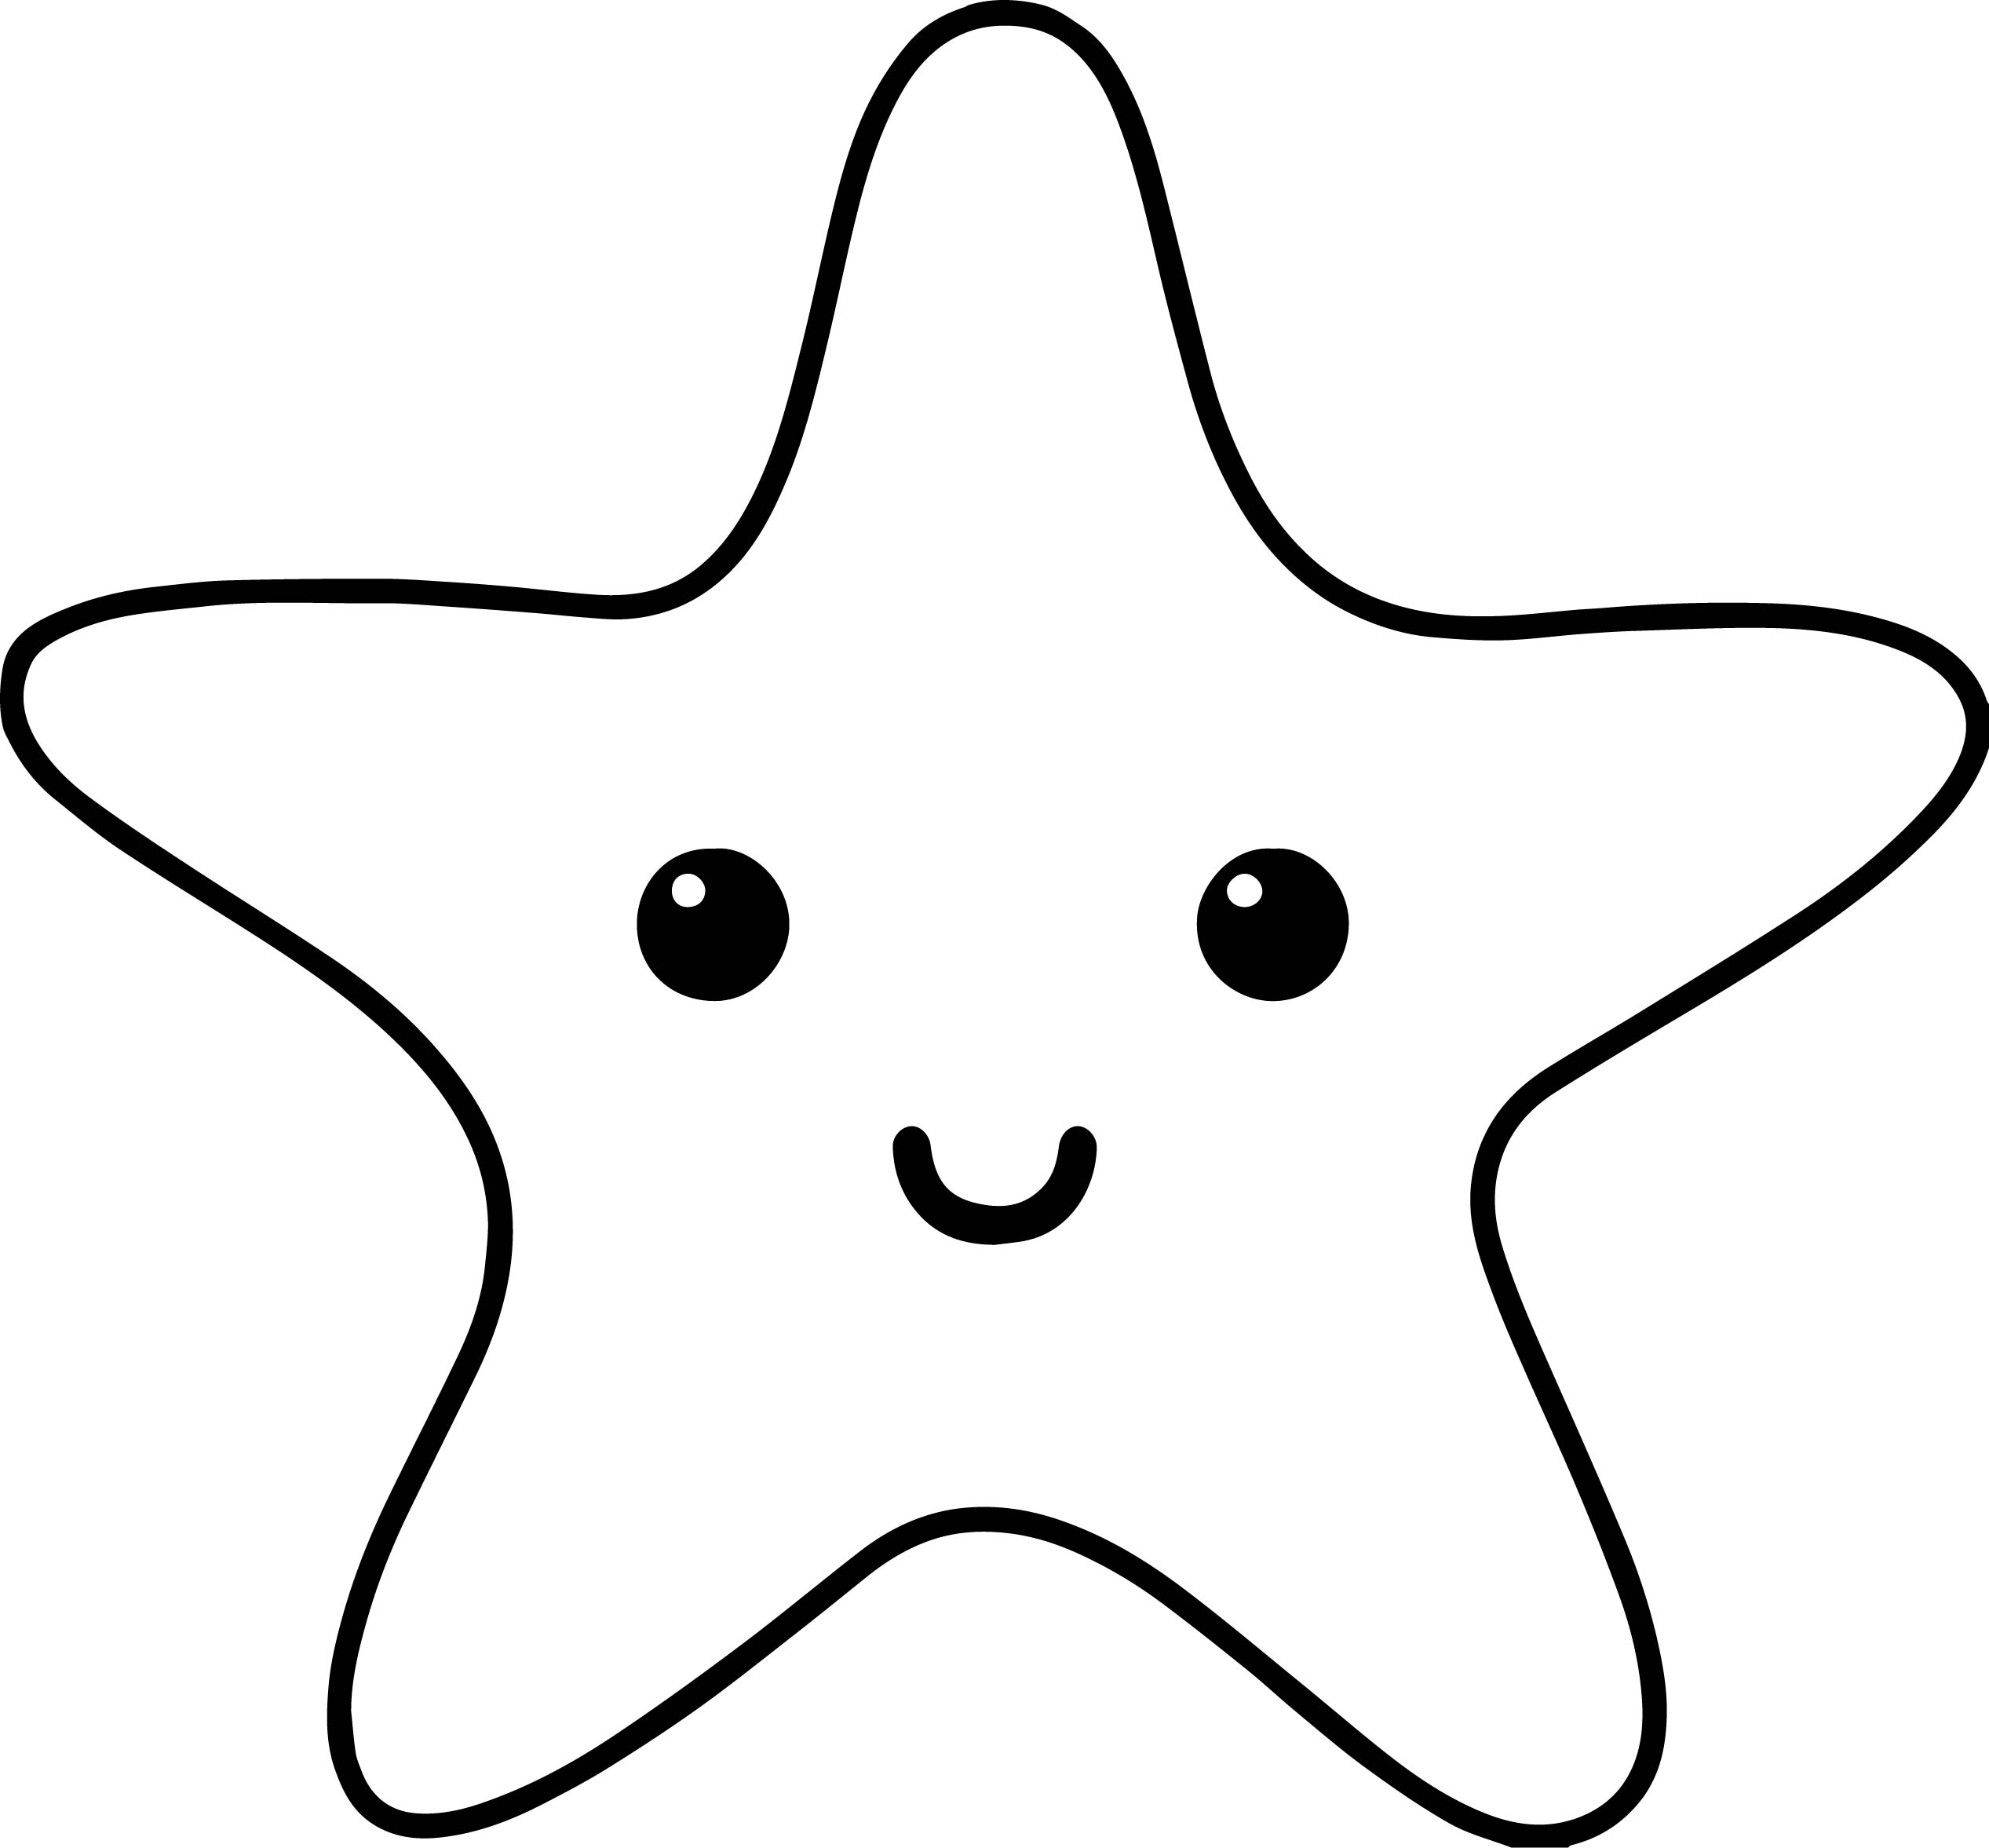 Starfish Sea Creatures Coloring Page